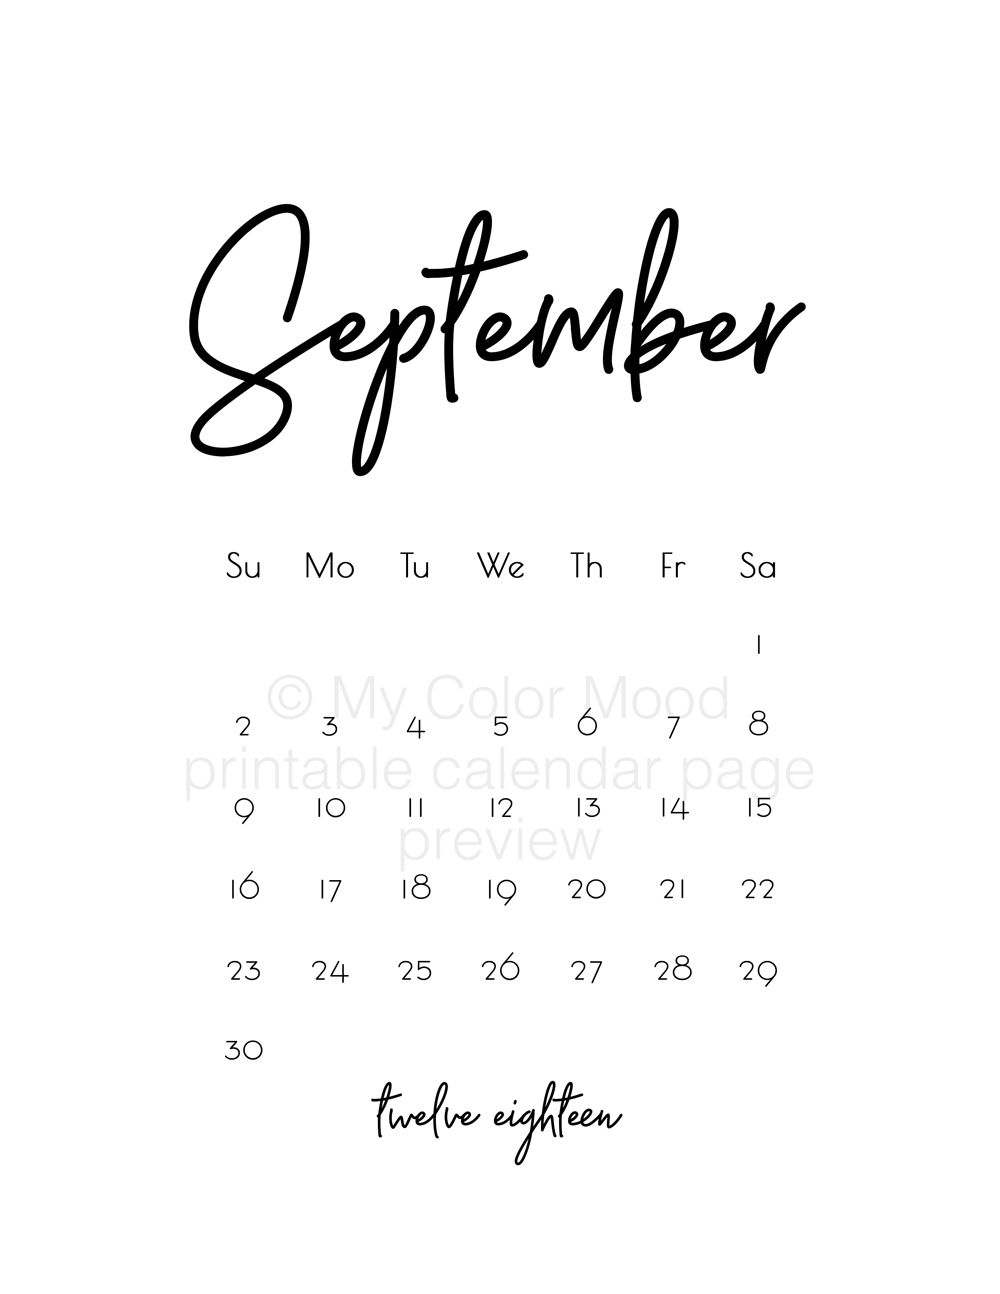 Office calendar 2018, Calendar download, Printable